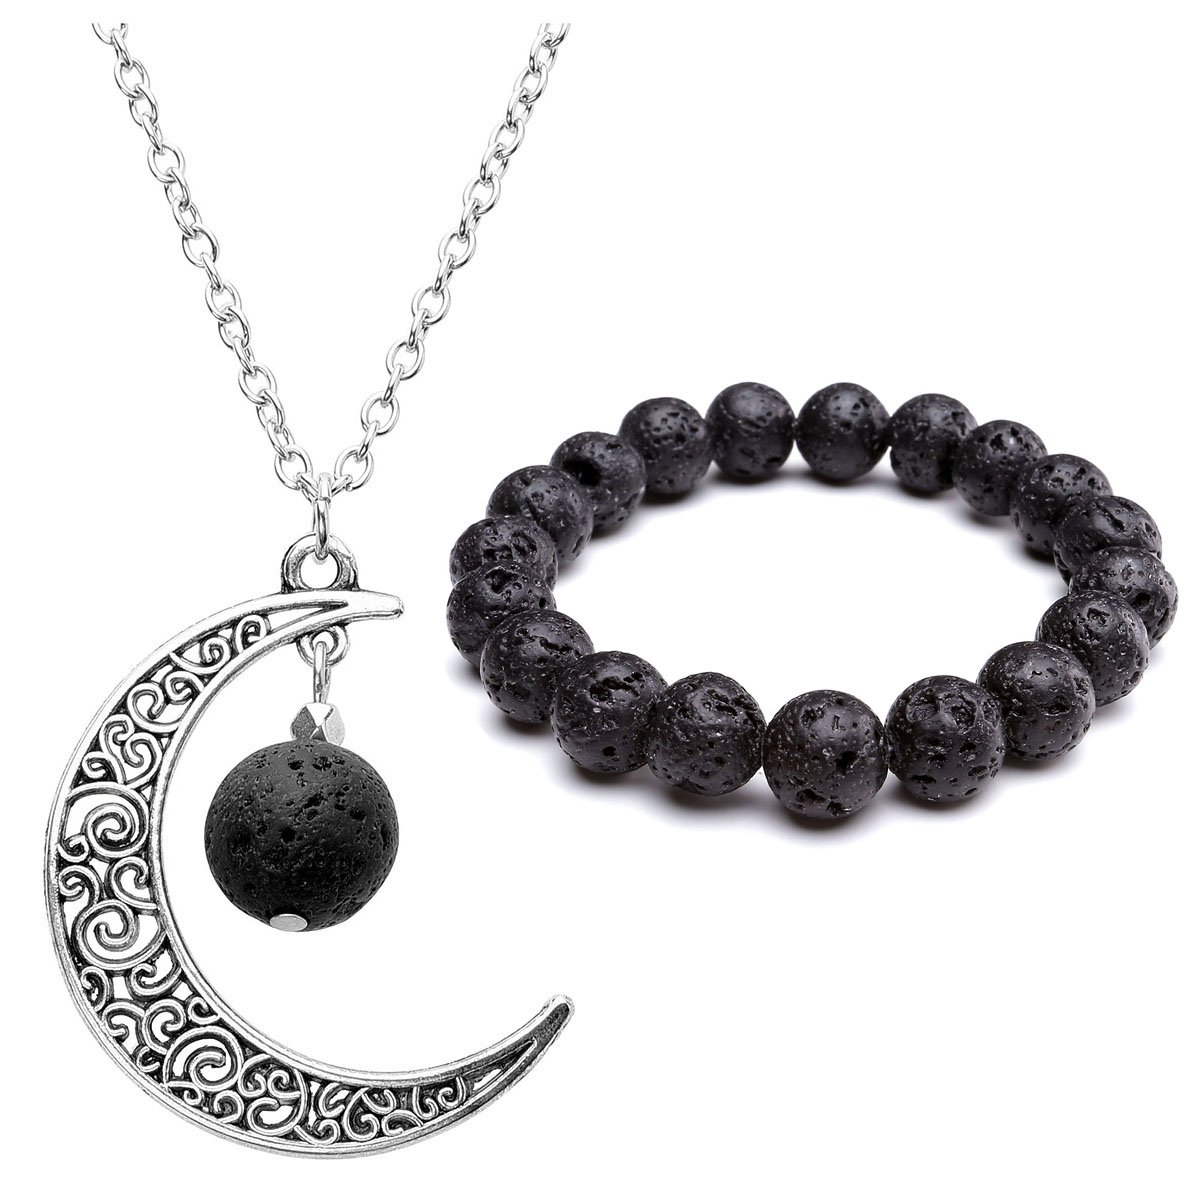 Top Plaza Women Fashion Aromatherapy Black Lava Rock Stone Essential Oil Diffuser Necklace Bracelet Set,Natural Gemstone Hollow Crescent Moon Necklace Jewelry Set